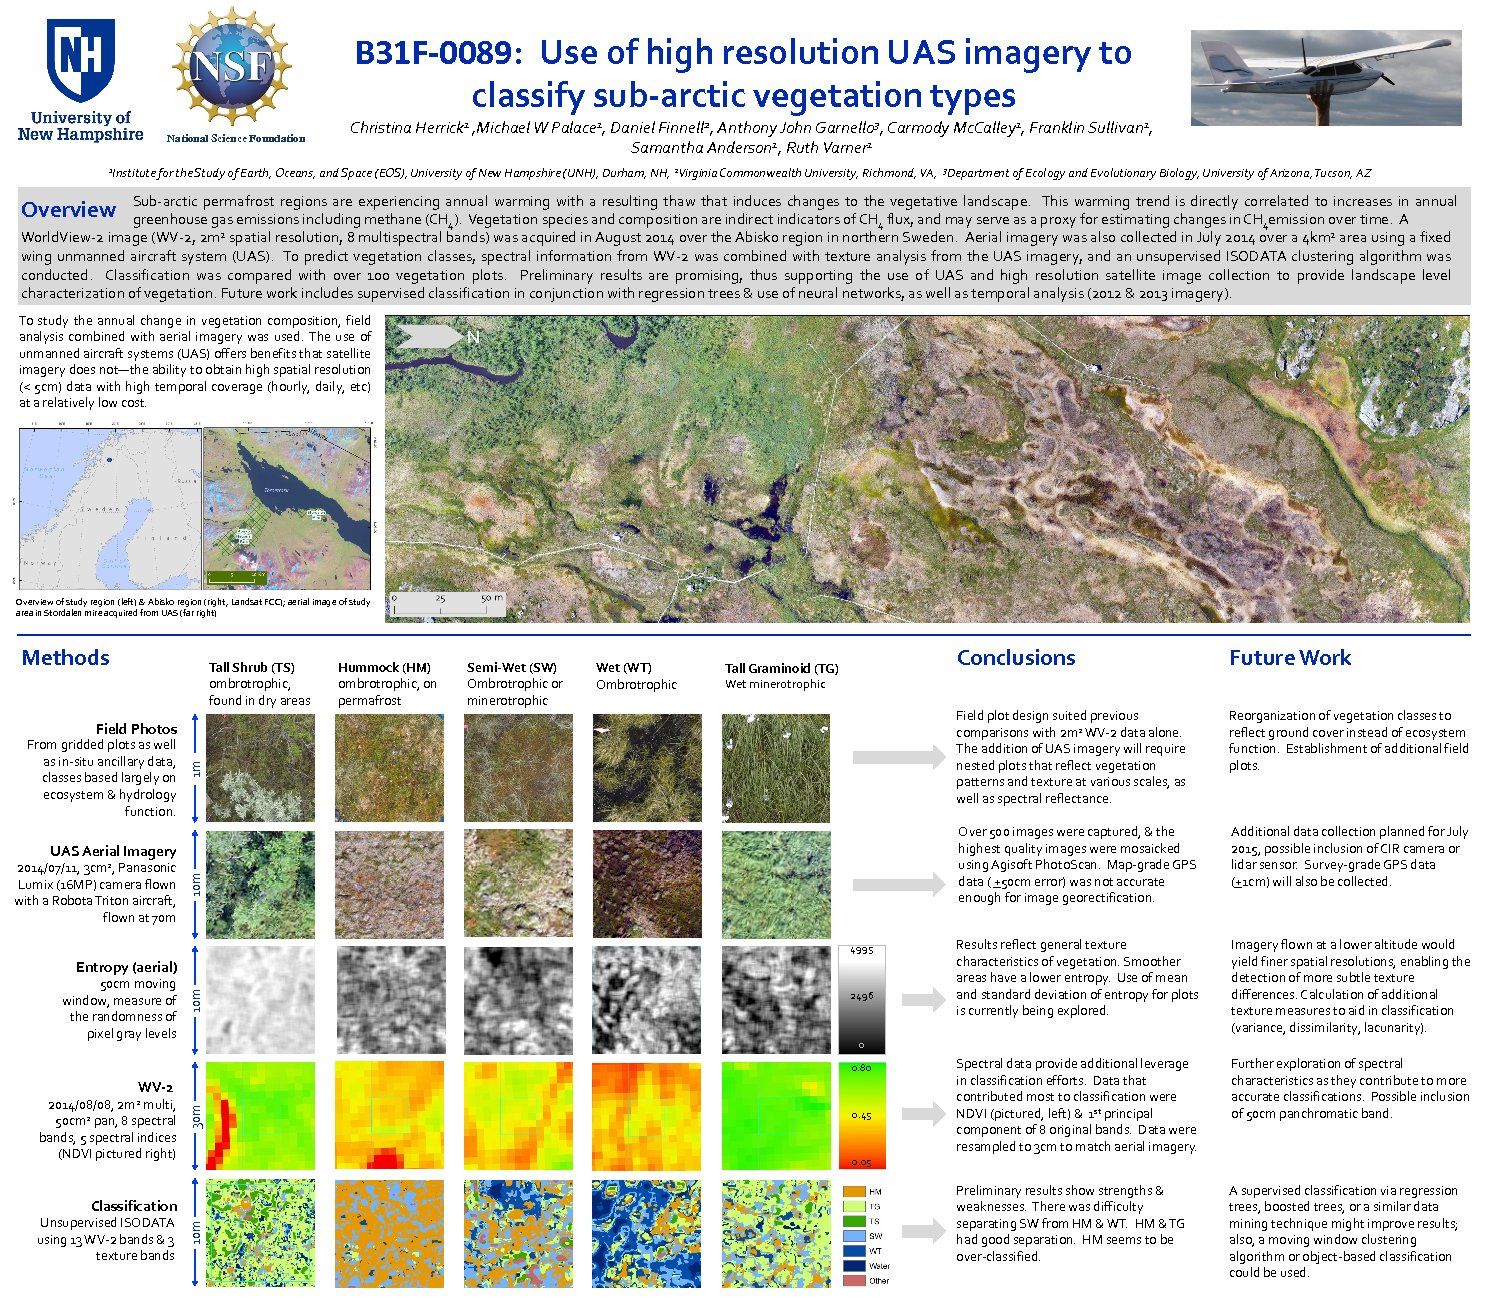 Use Of High Resolution Uas Imagery To Classify Sub-Arctic Vegetation Types by herrick